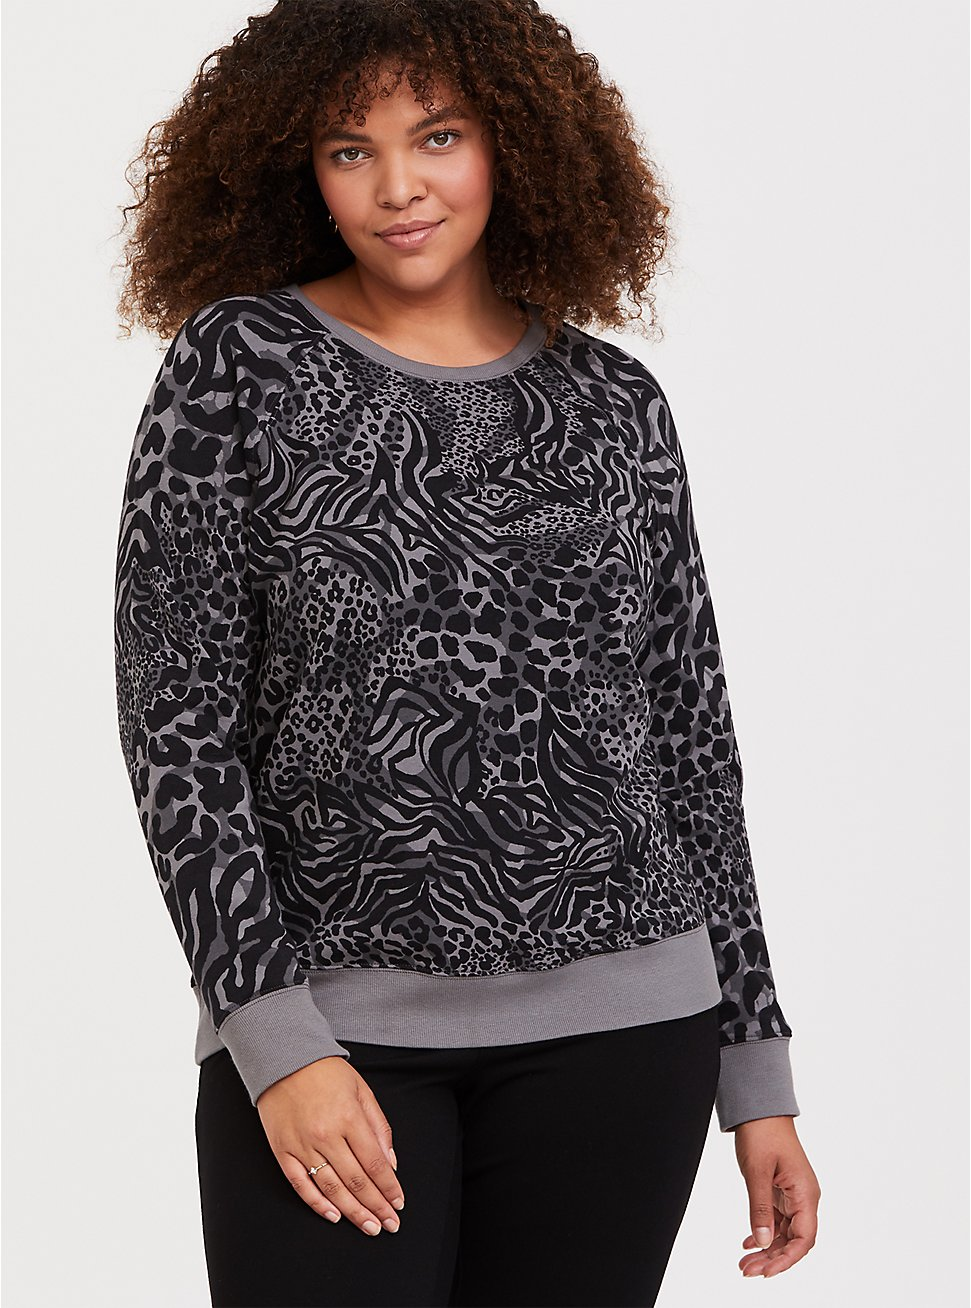 Grey Mixed Animal Print Pullover Sweatshirt, ANIMAL, hi-res